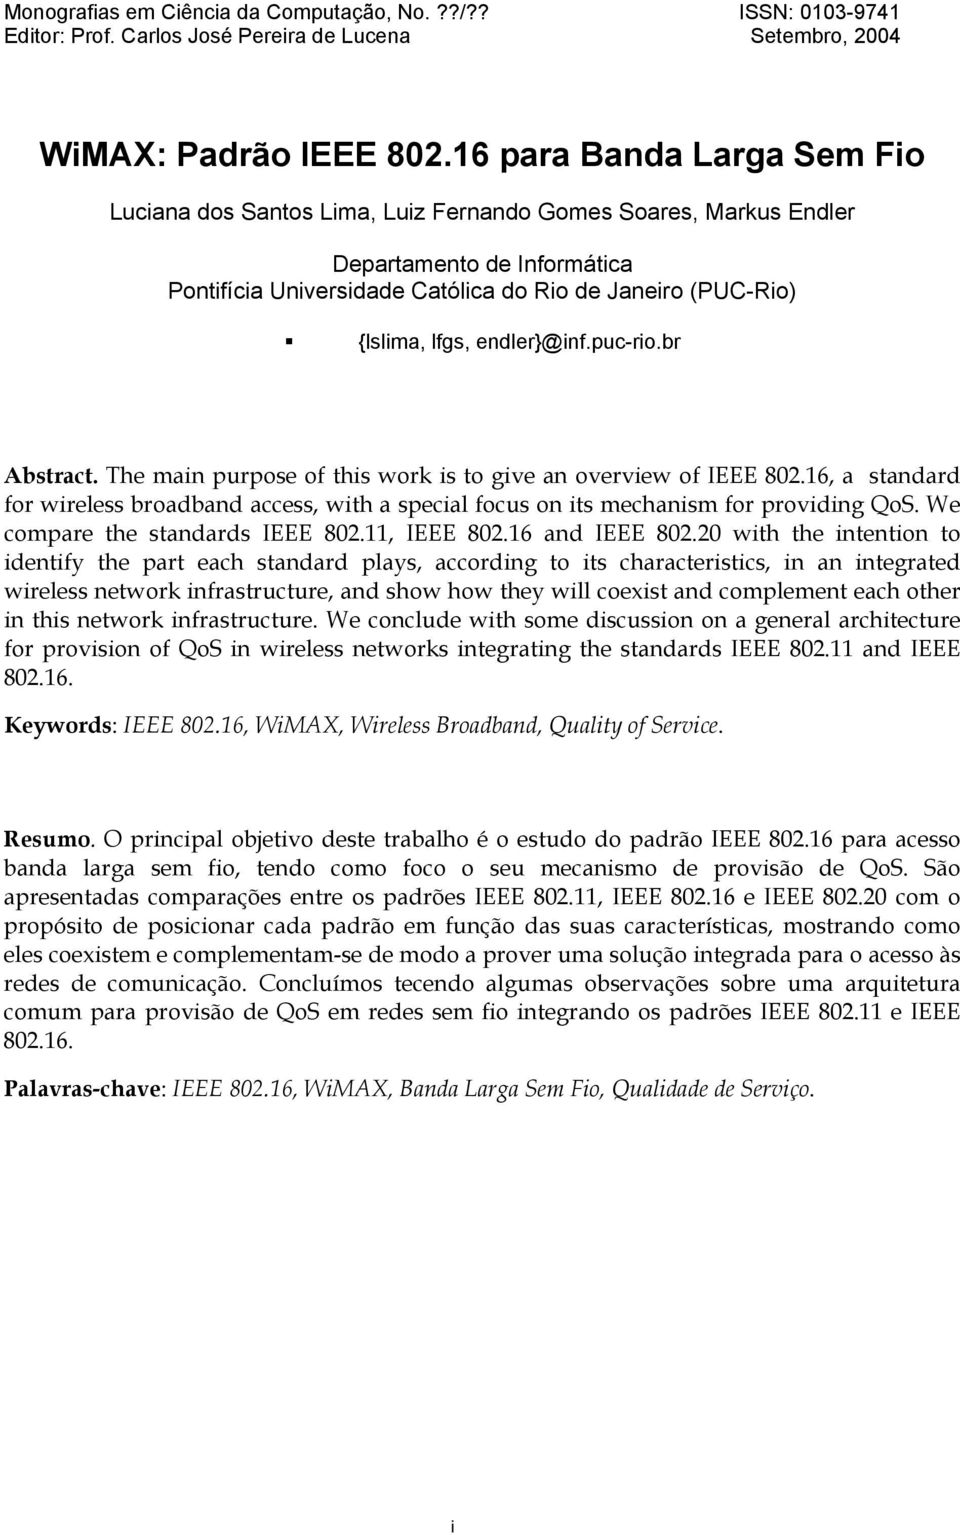 endler}@inf.puc-rio.br Abstract. The main purpose of this work is to give an overview of IEEE 802.16, a standard for wireless broadband access, with a special focus on its mechanism for providing QoS.